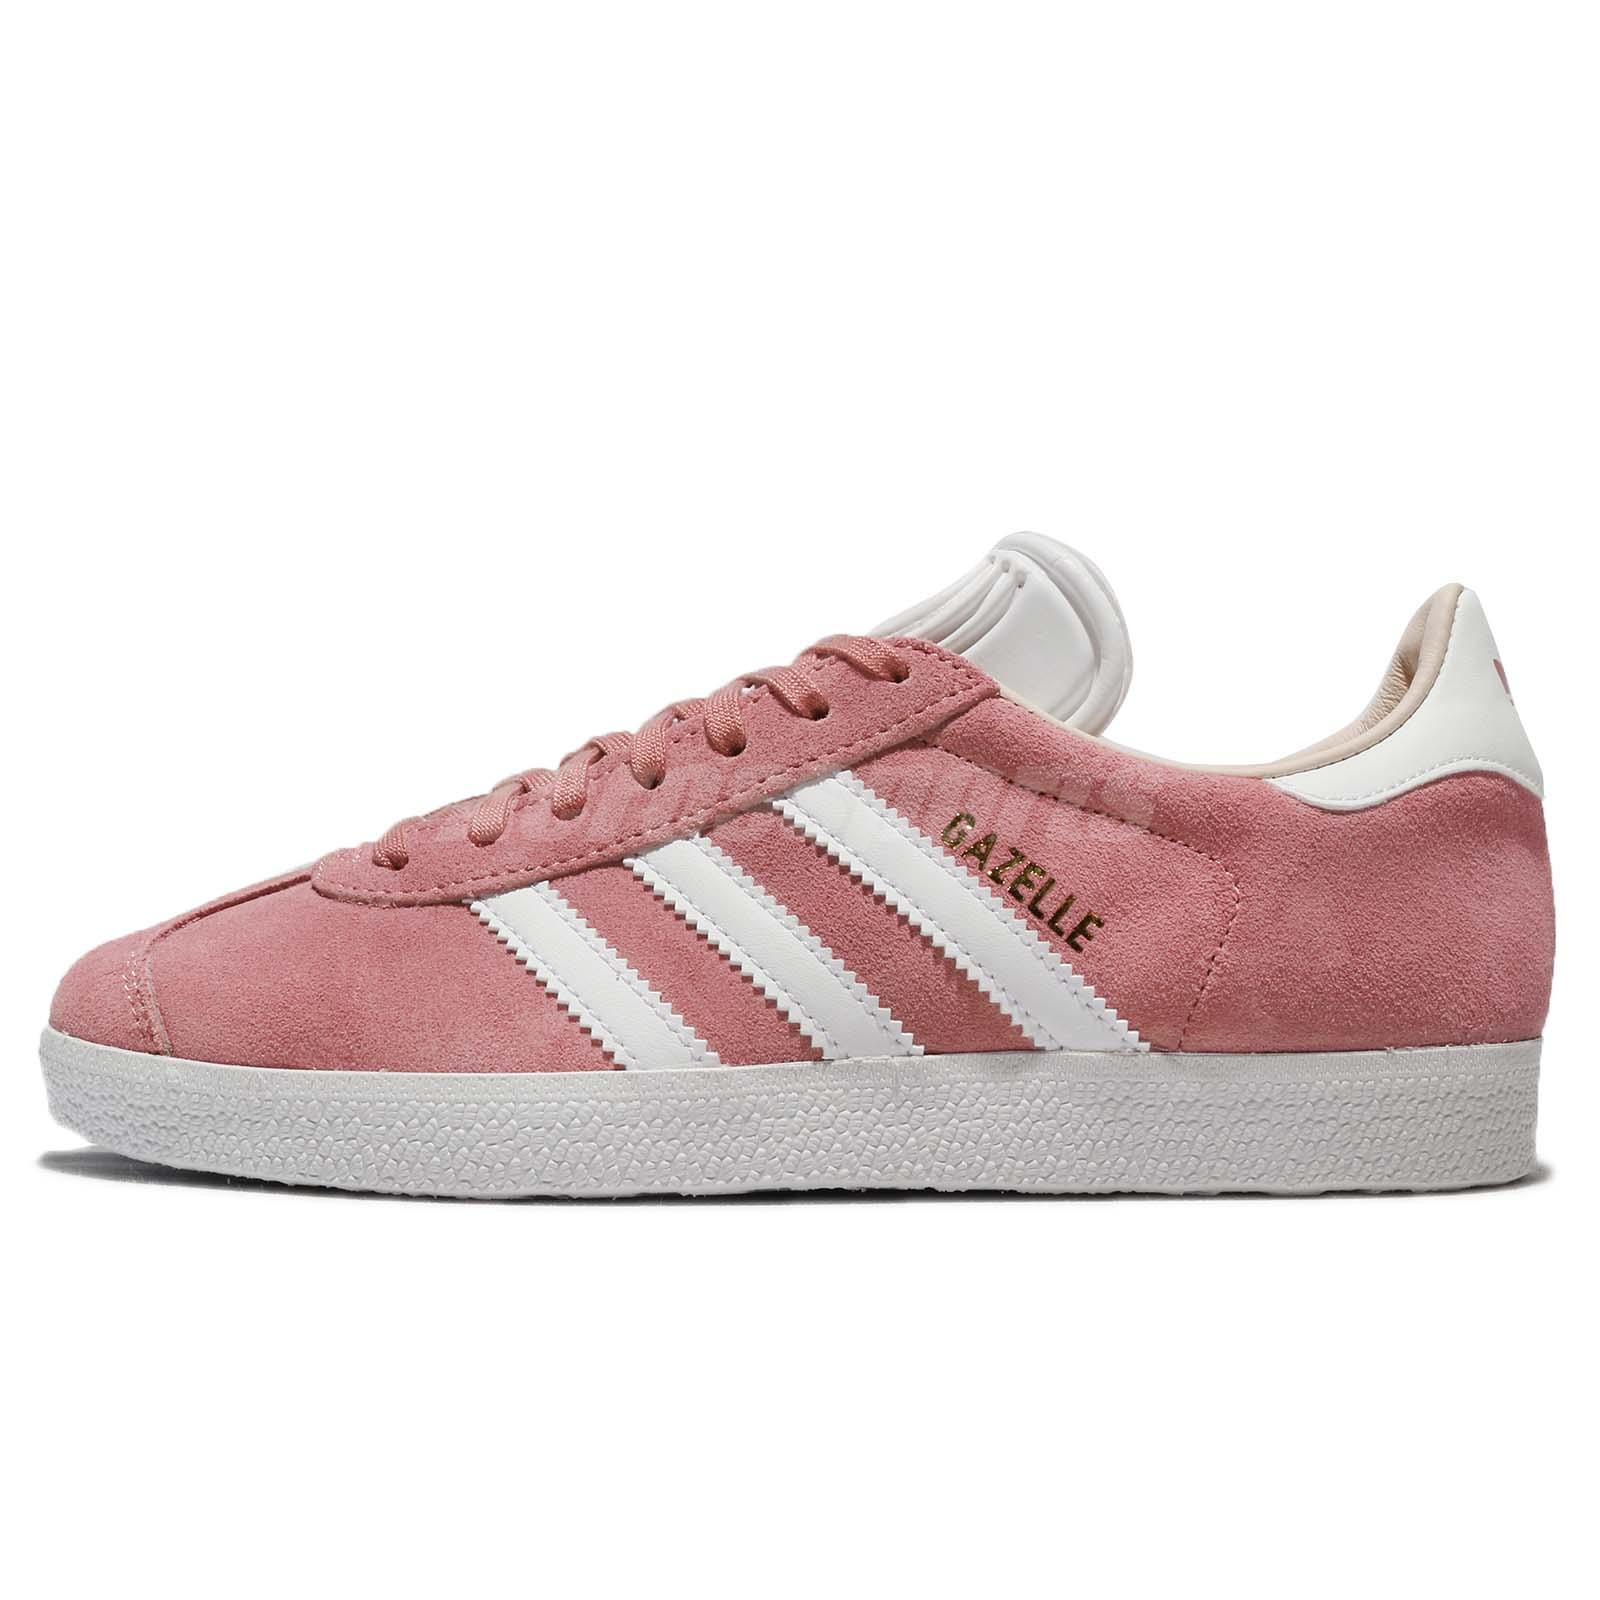 4f84578ffd2 adidas Originals Gazelle W Suede Pink Ash Pearl White Linen Women Shoes  CQ2186